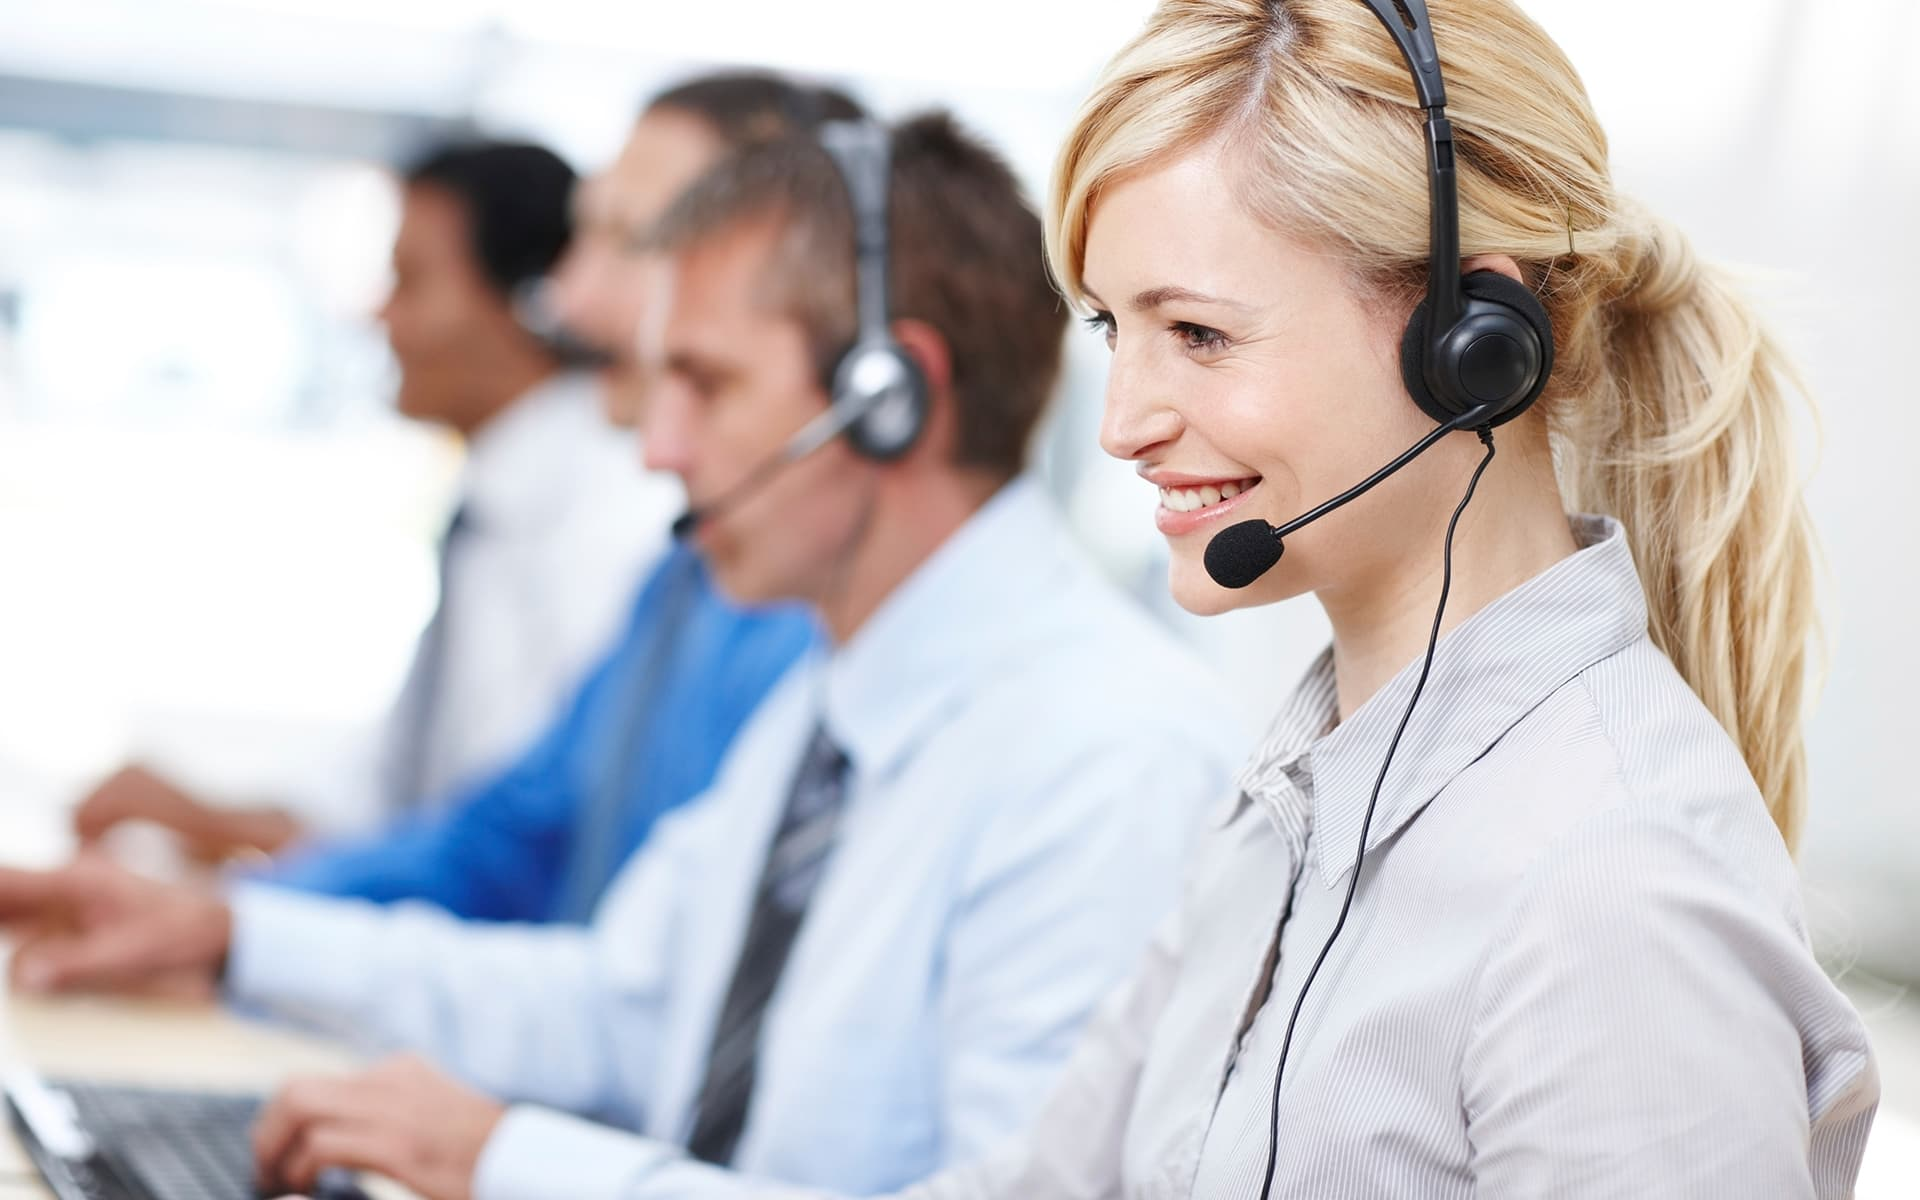 Call center team work